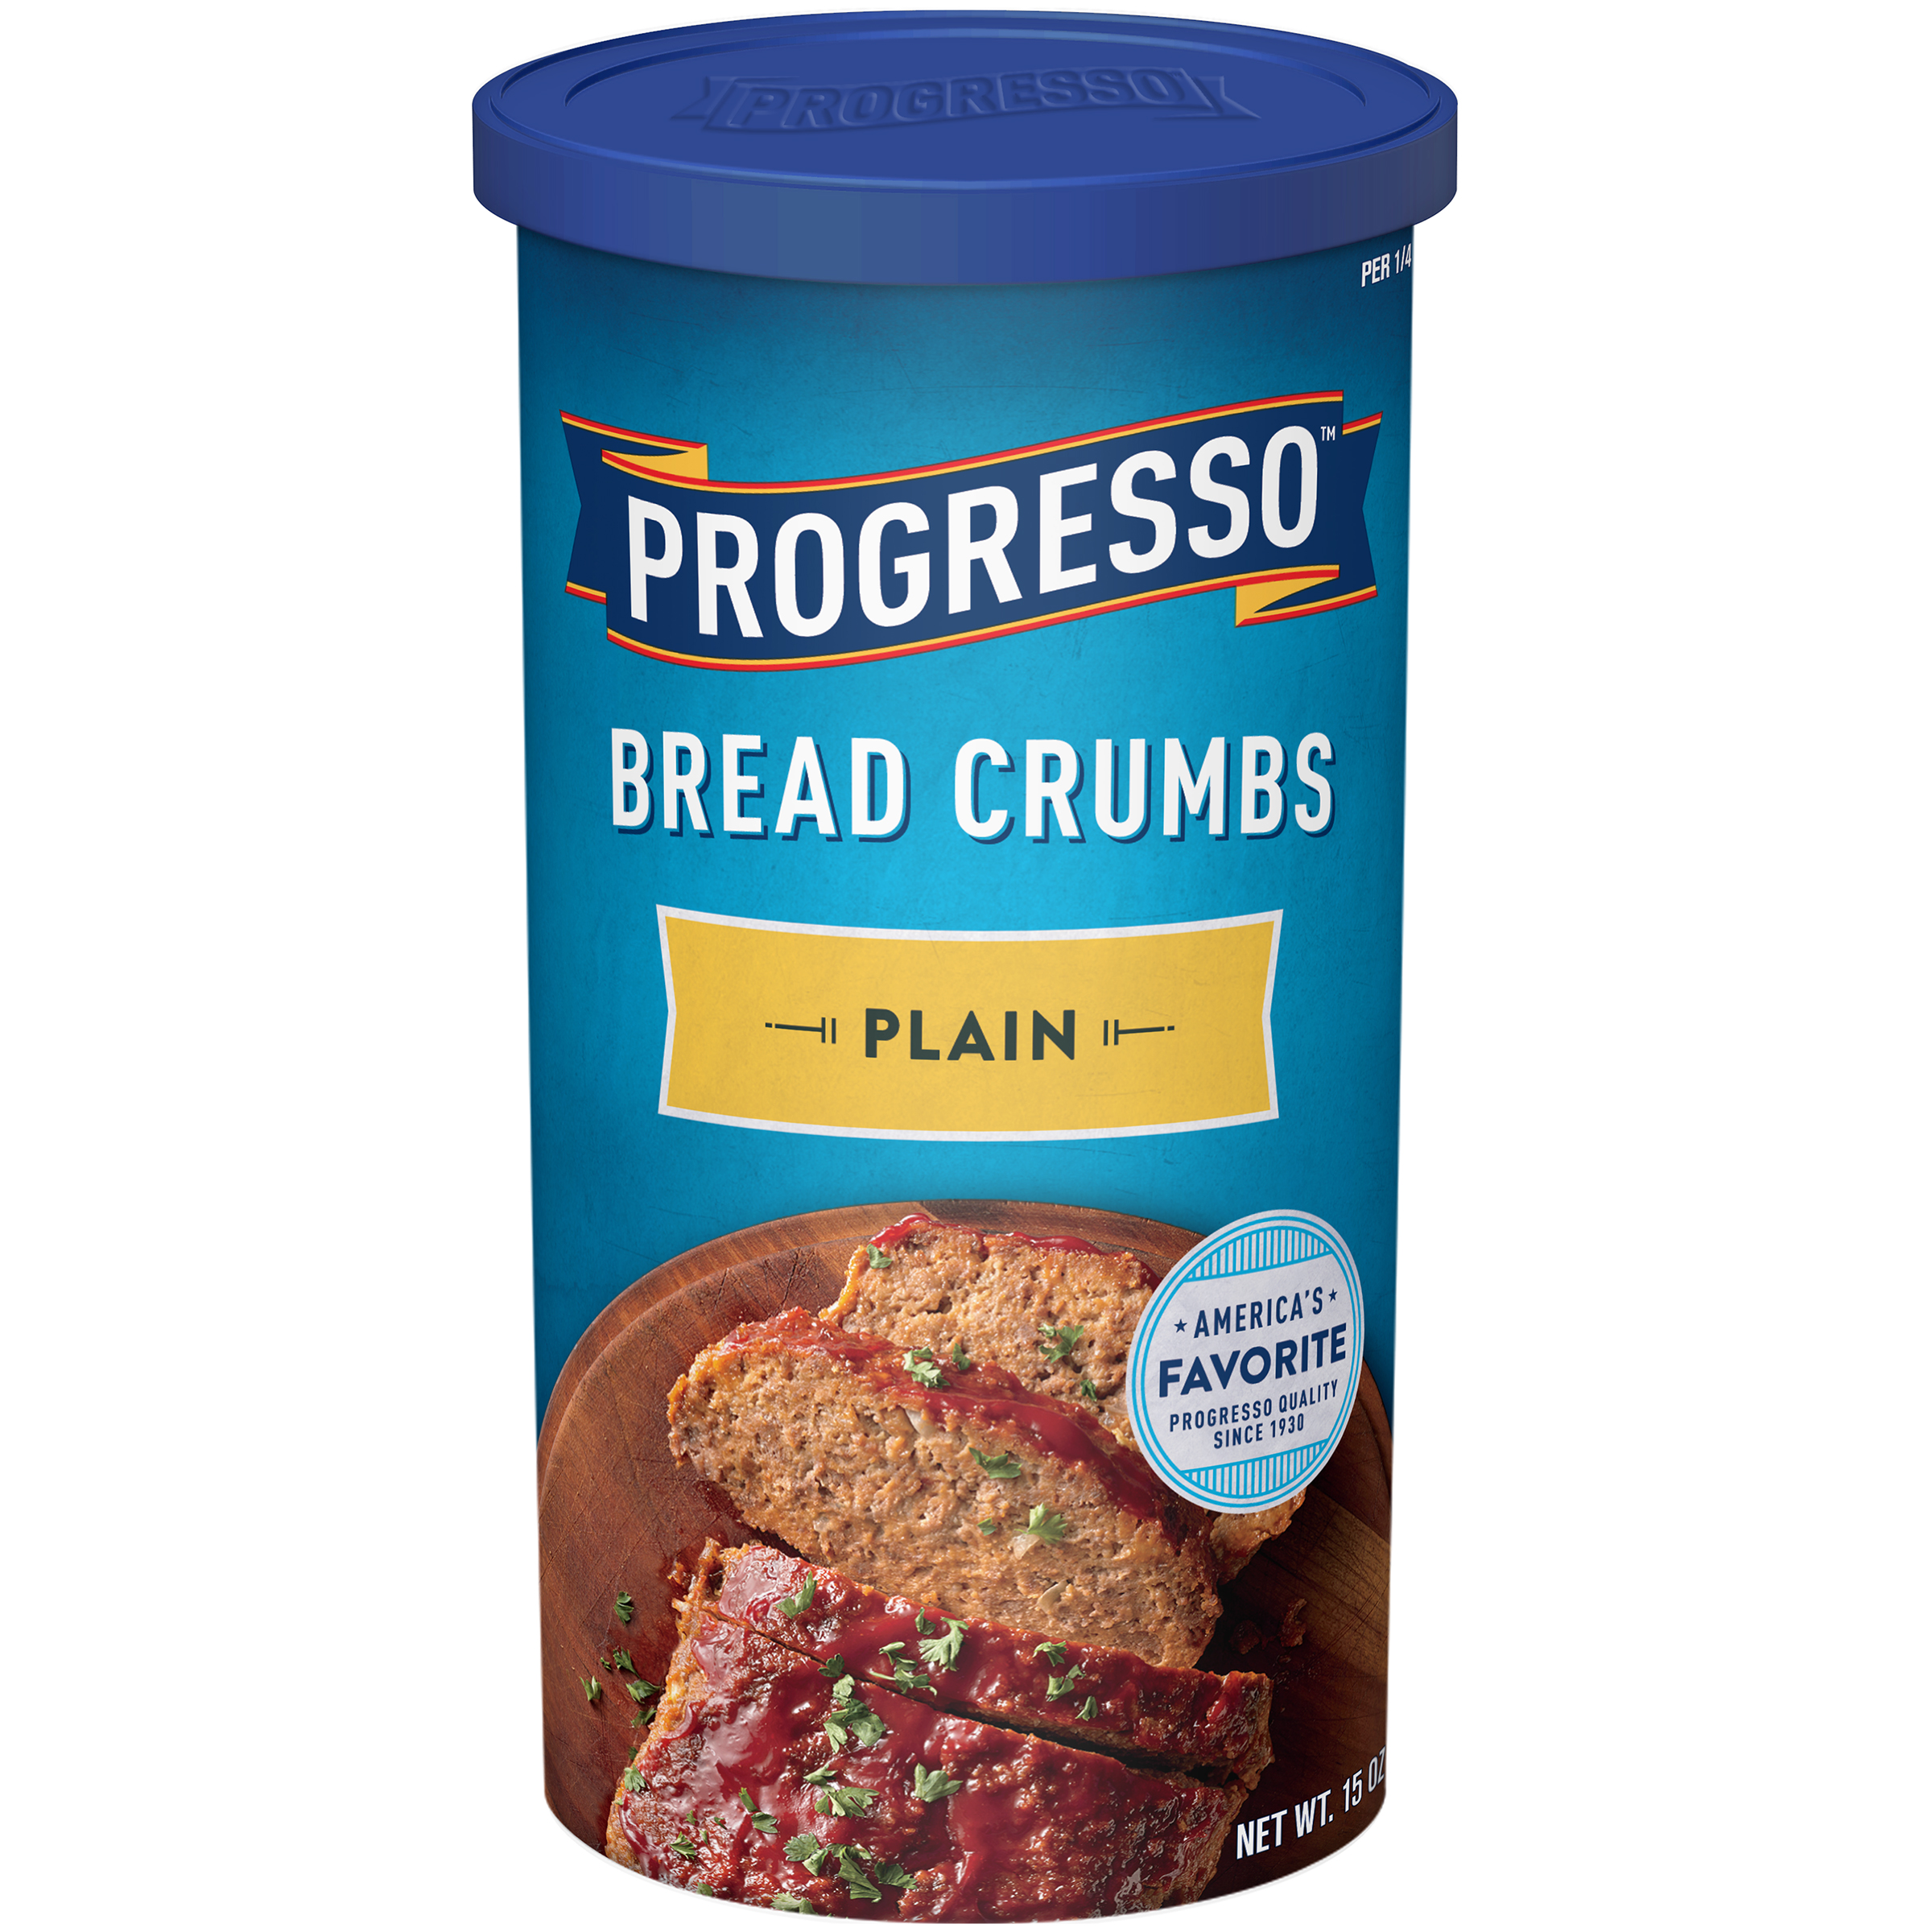 Progresso��� Plain Bread Crumbs 15 oz. Canister